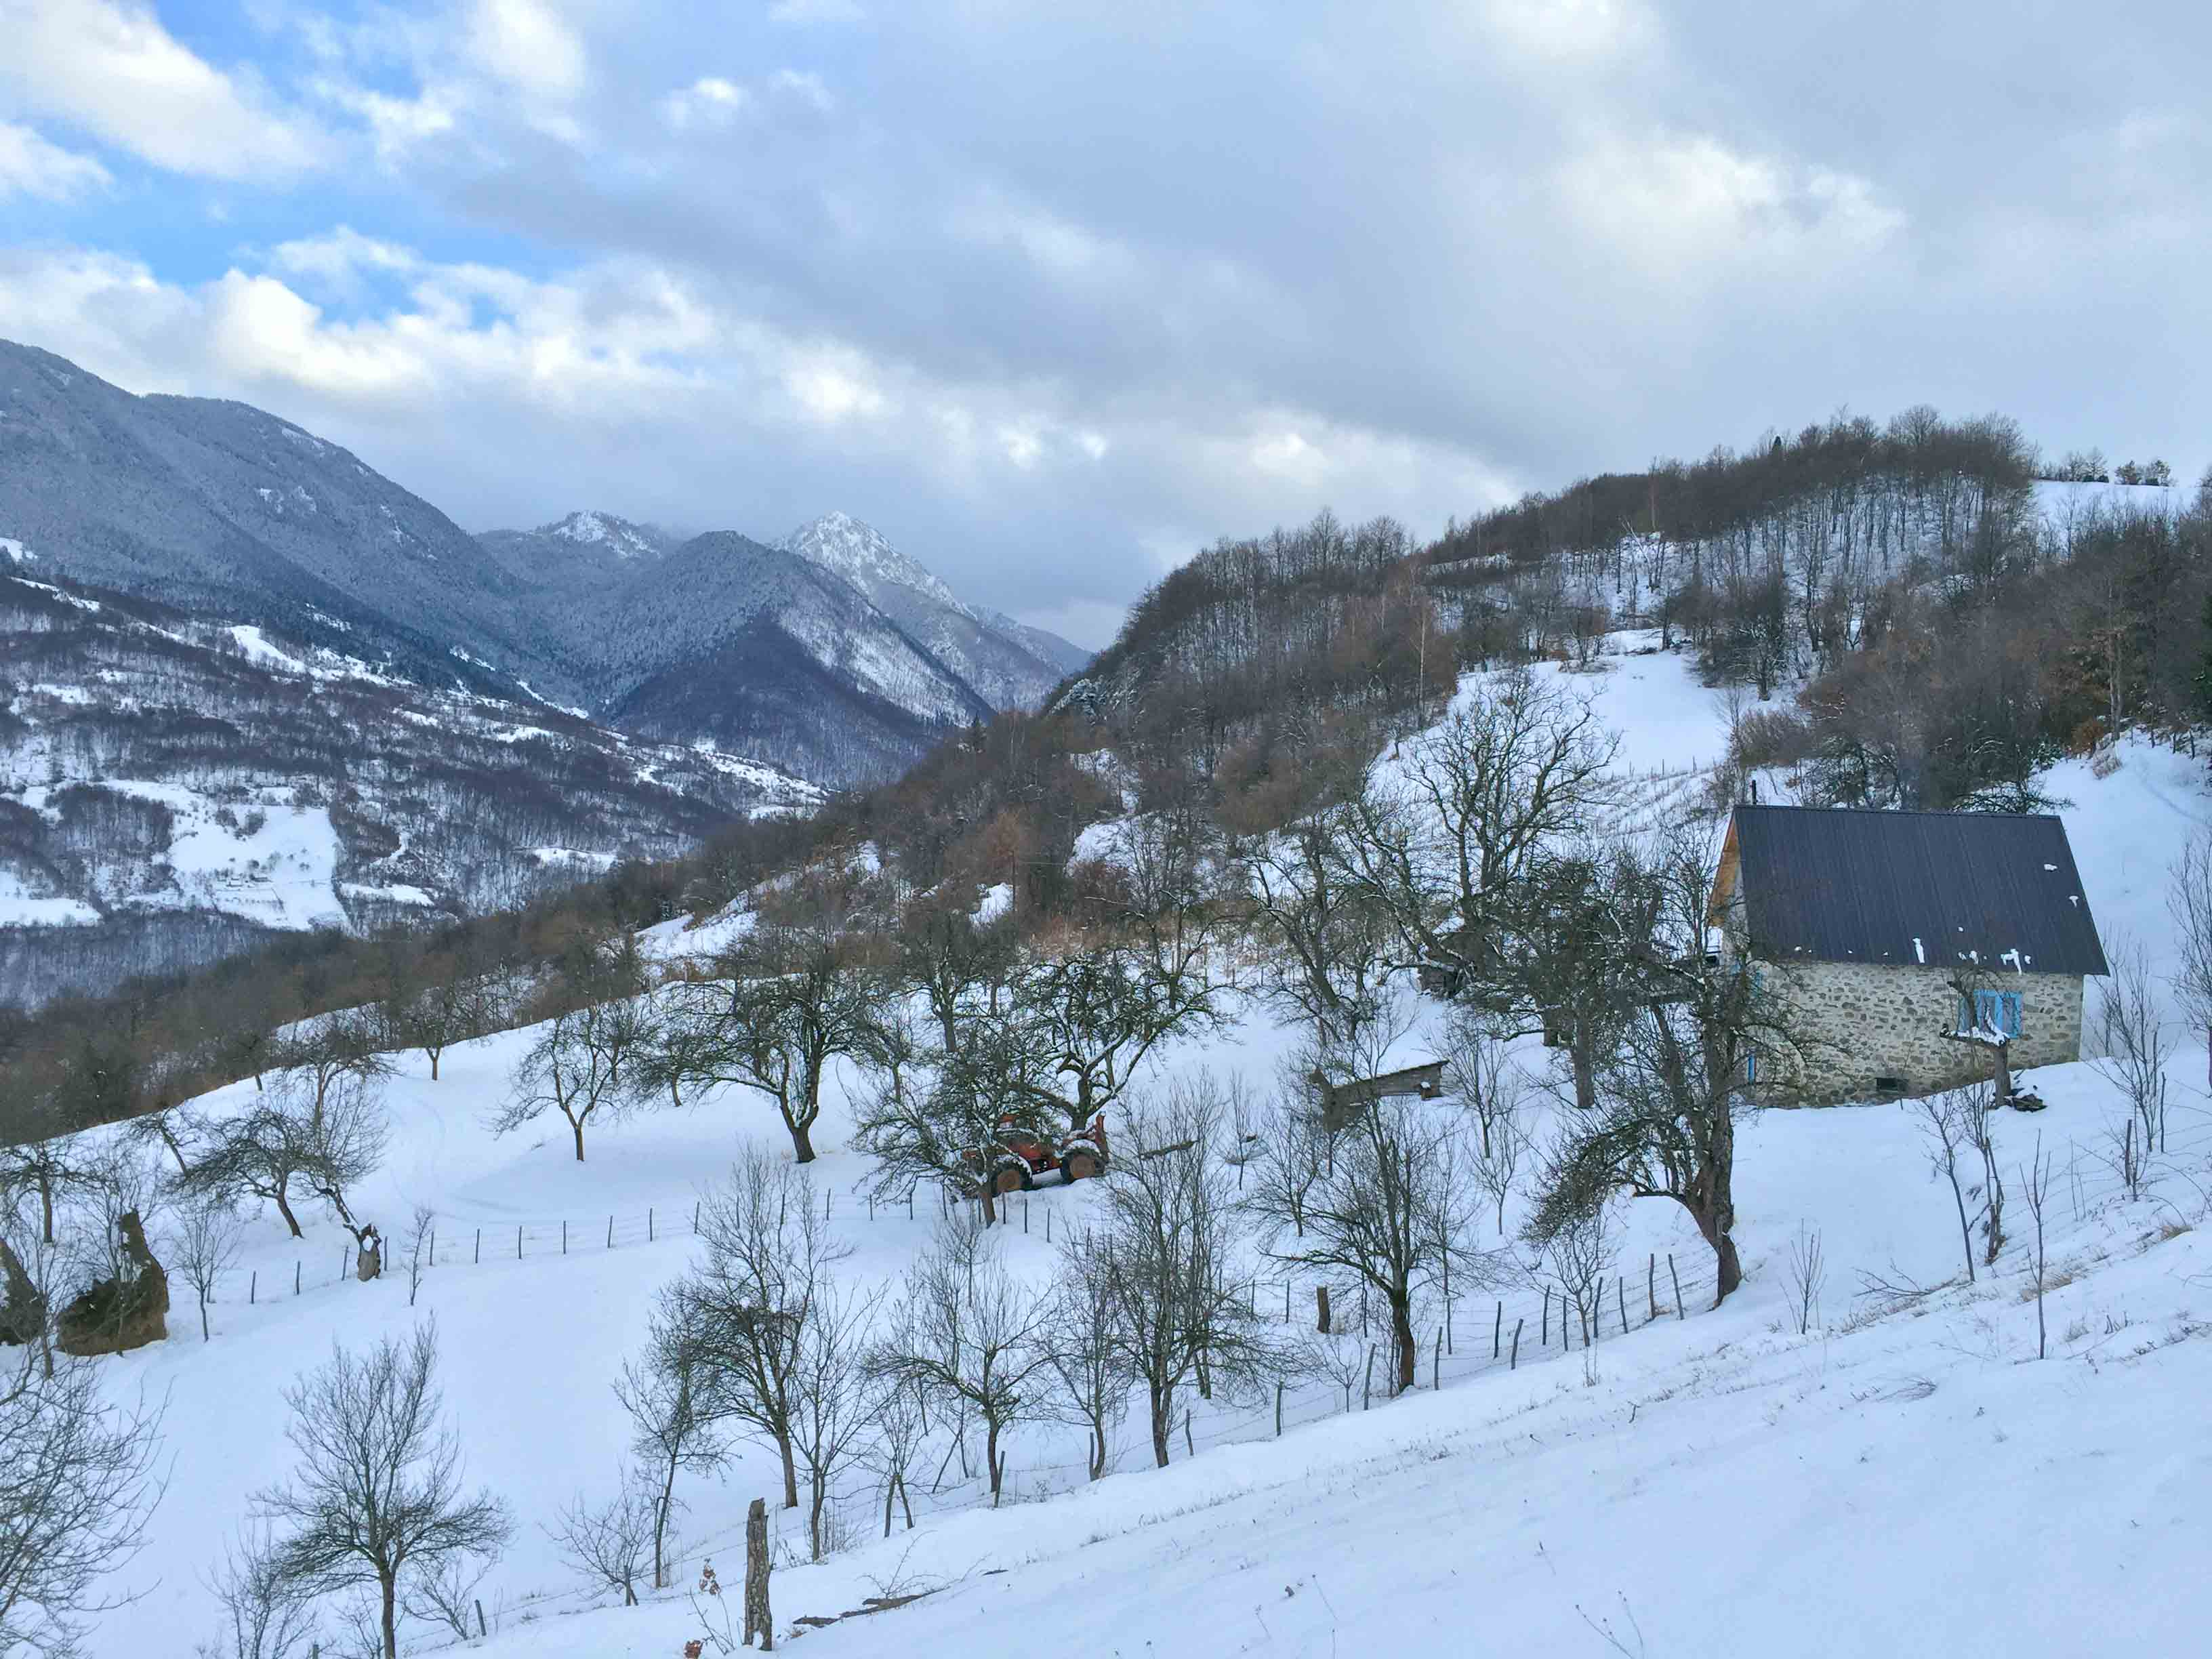 Vucjelic Do in winter - member of the Meanderbug farm stay network